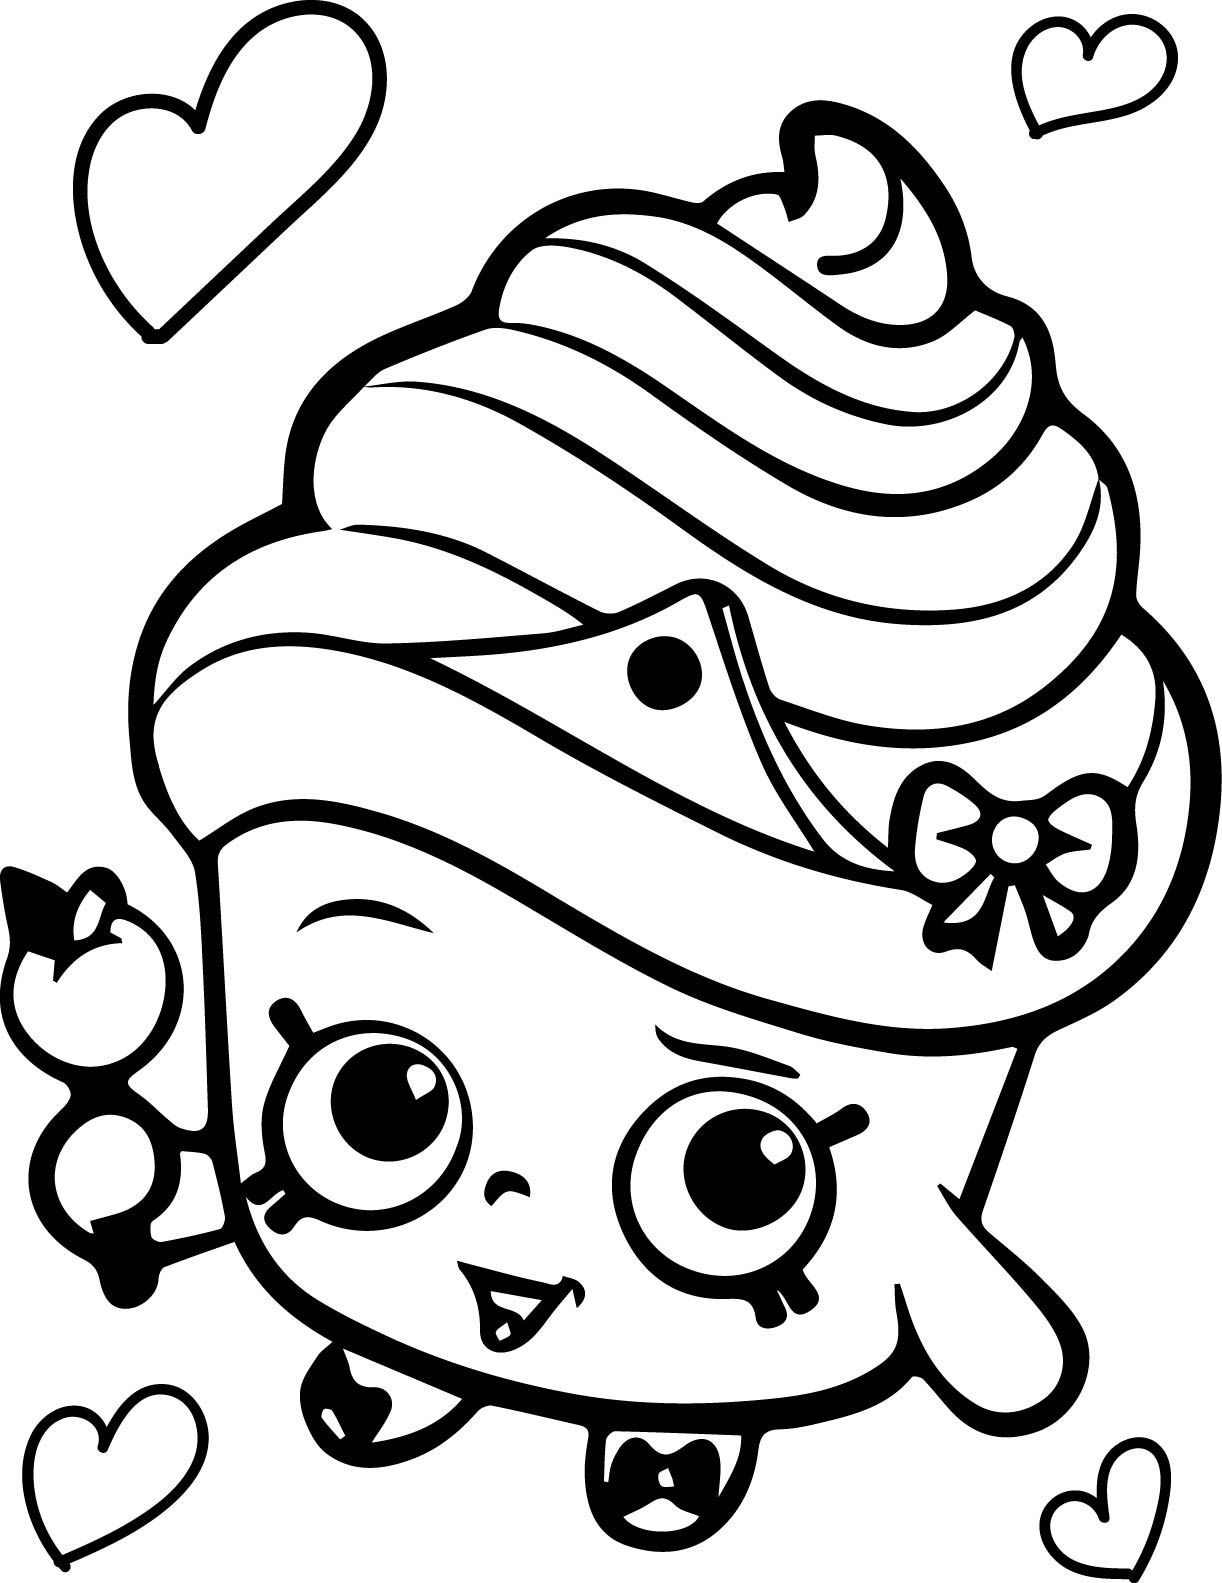 Awesome Shopkins Cupcake Queen Coloring Page Shopkins Coloring Pages Free Printable Shopkin Coloring Pages Shopkins Drawings